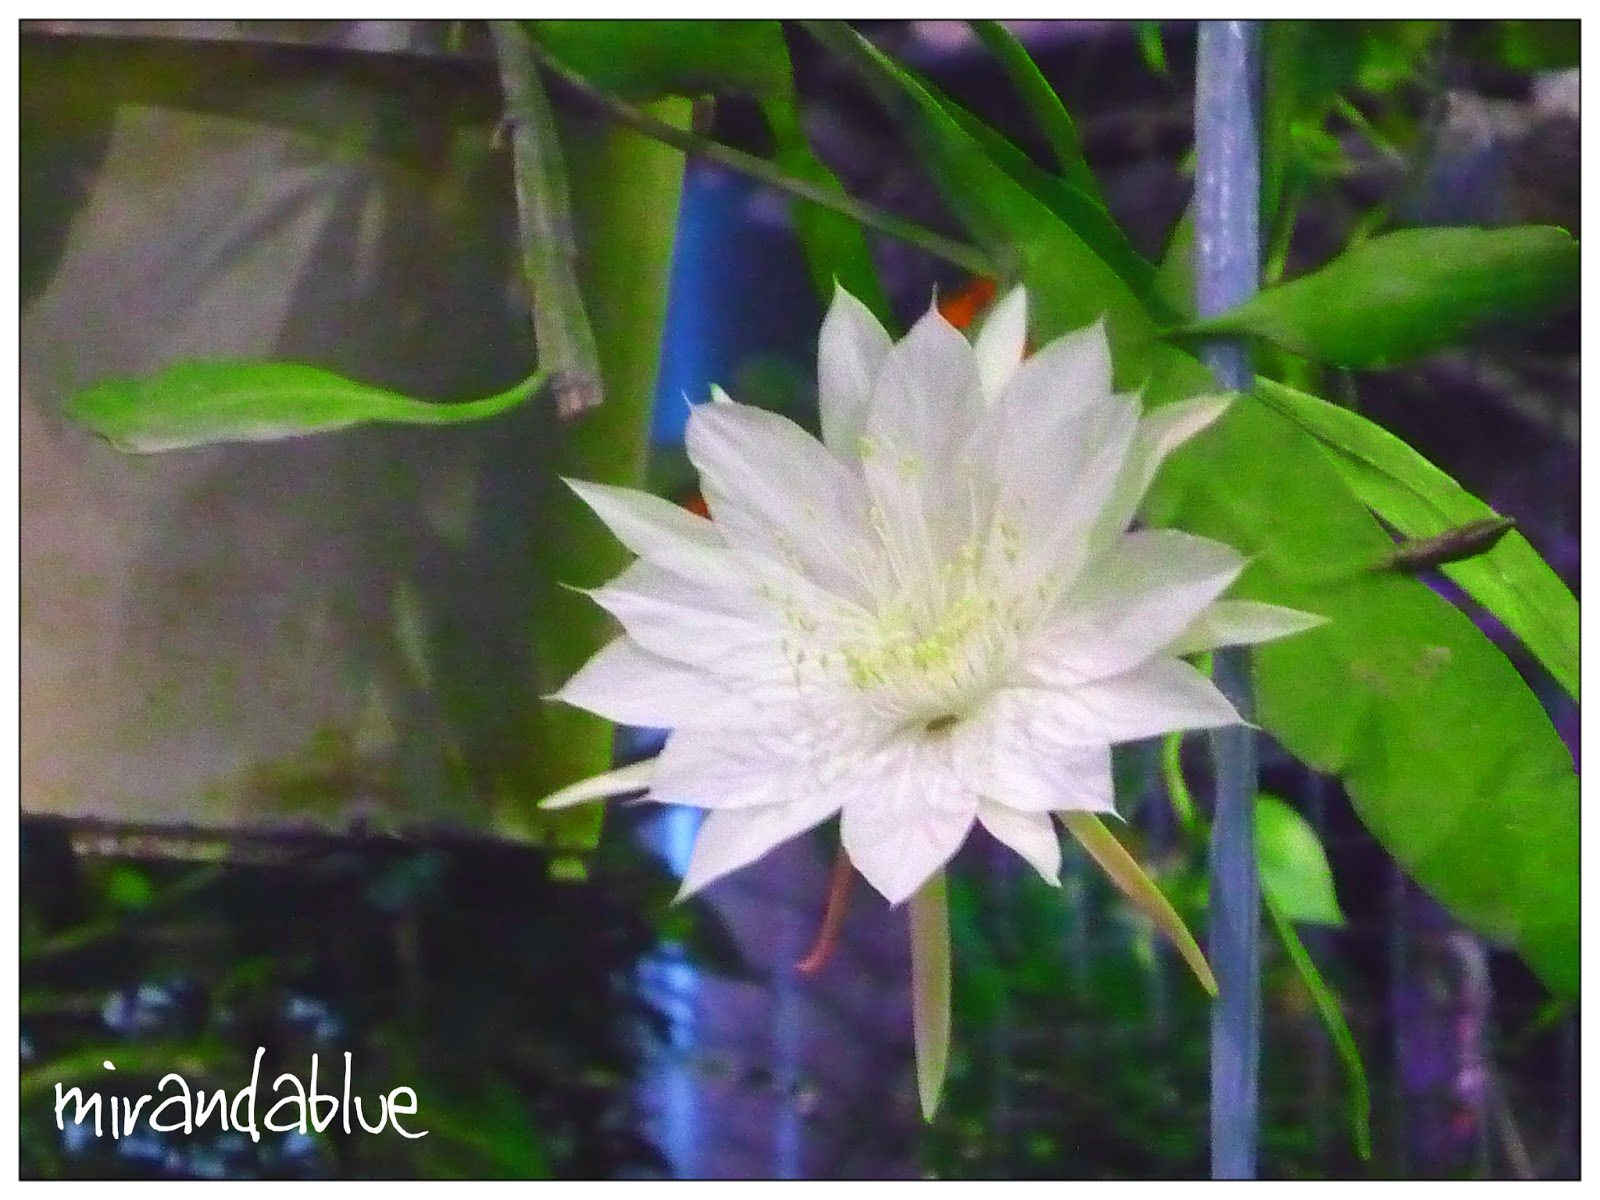 Why Are Night Blooming Flowers White Image Collections Fresh Lotus